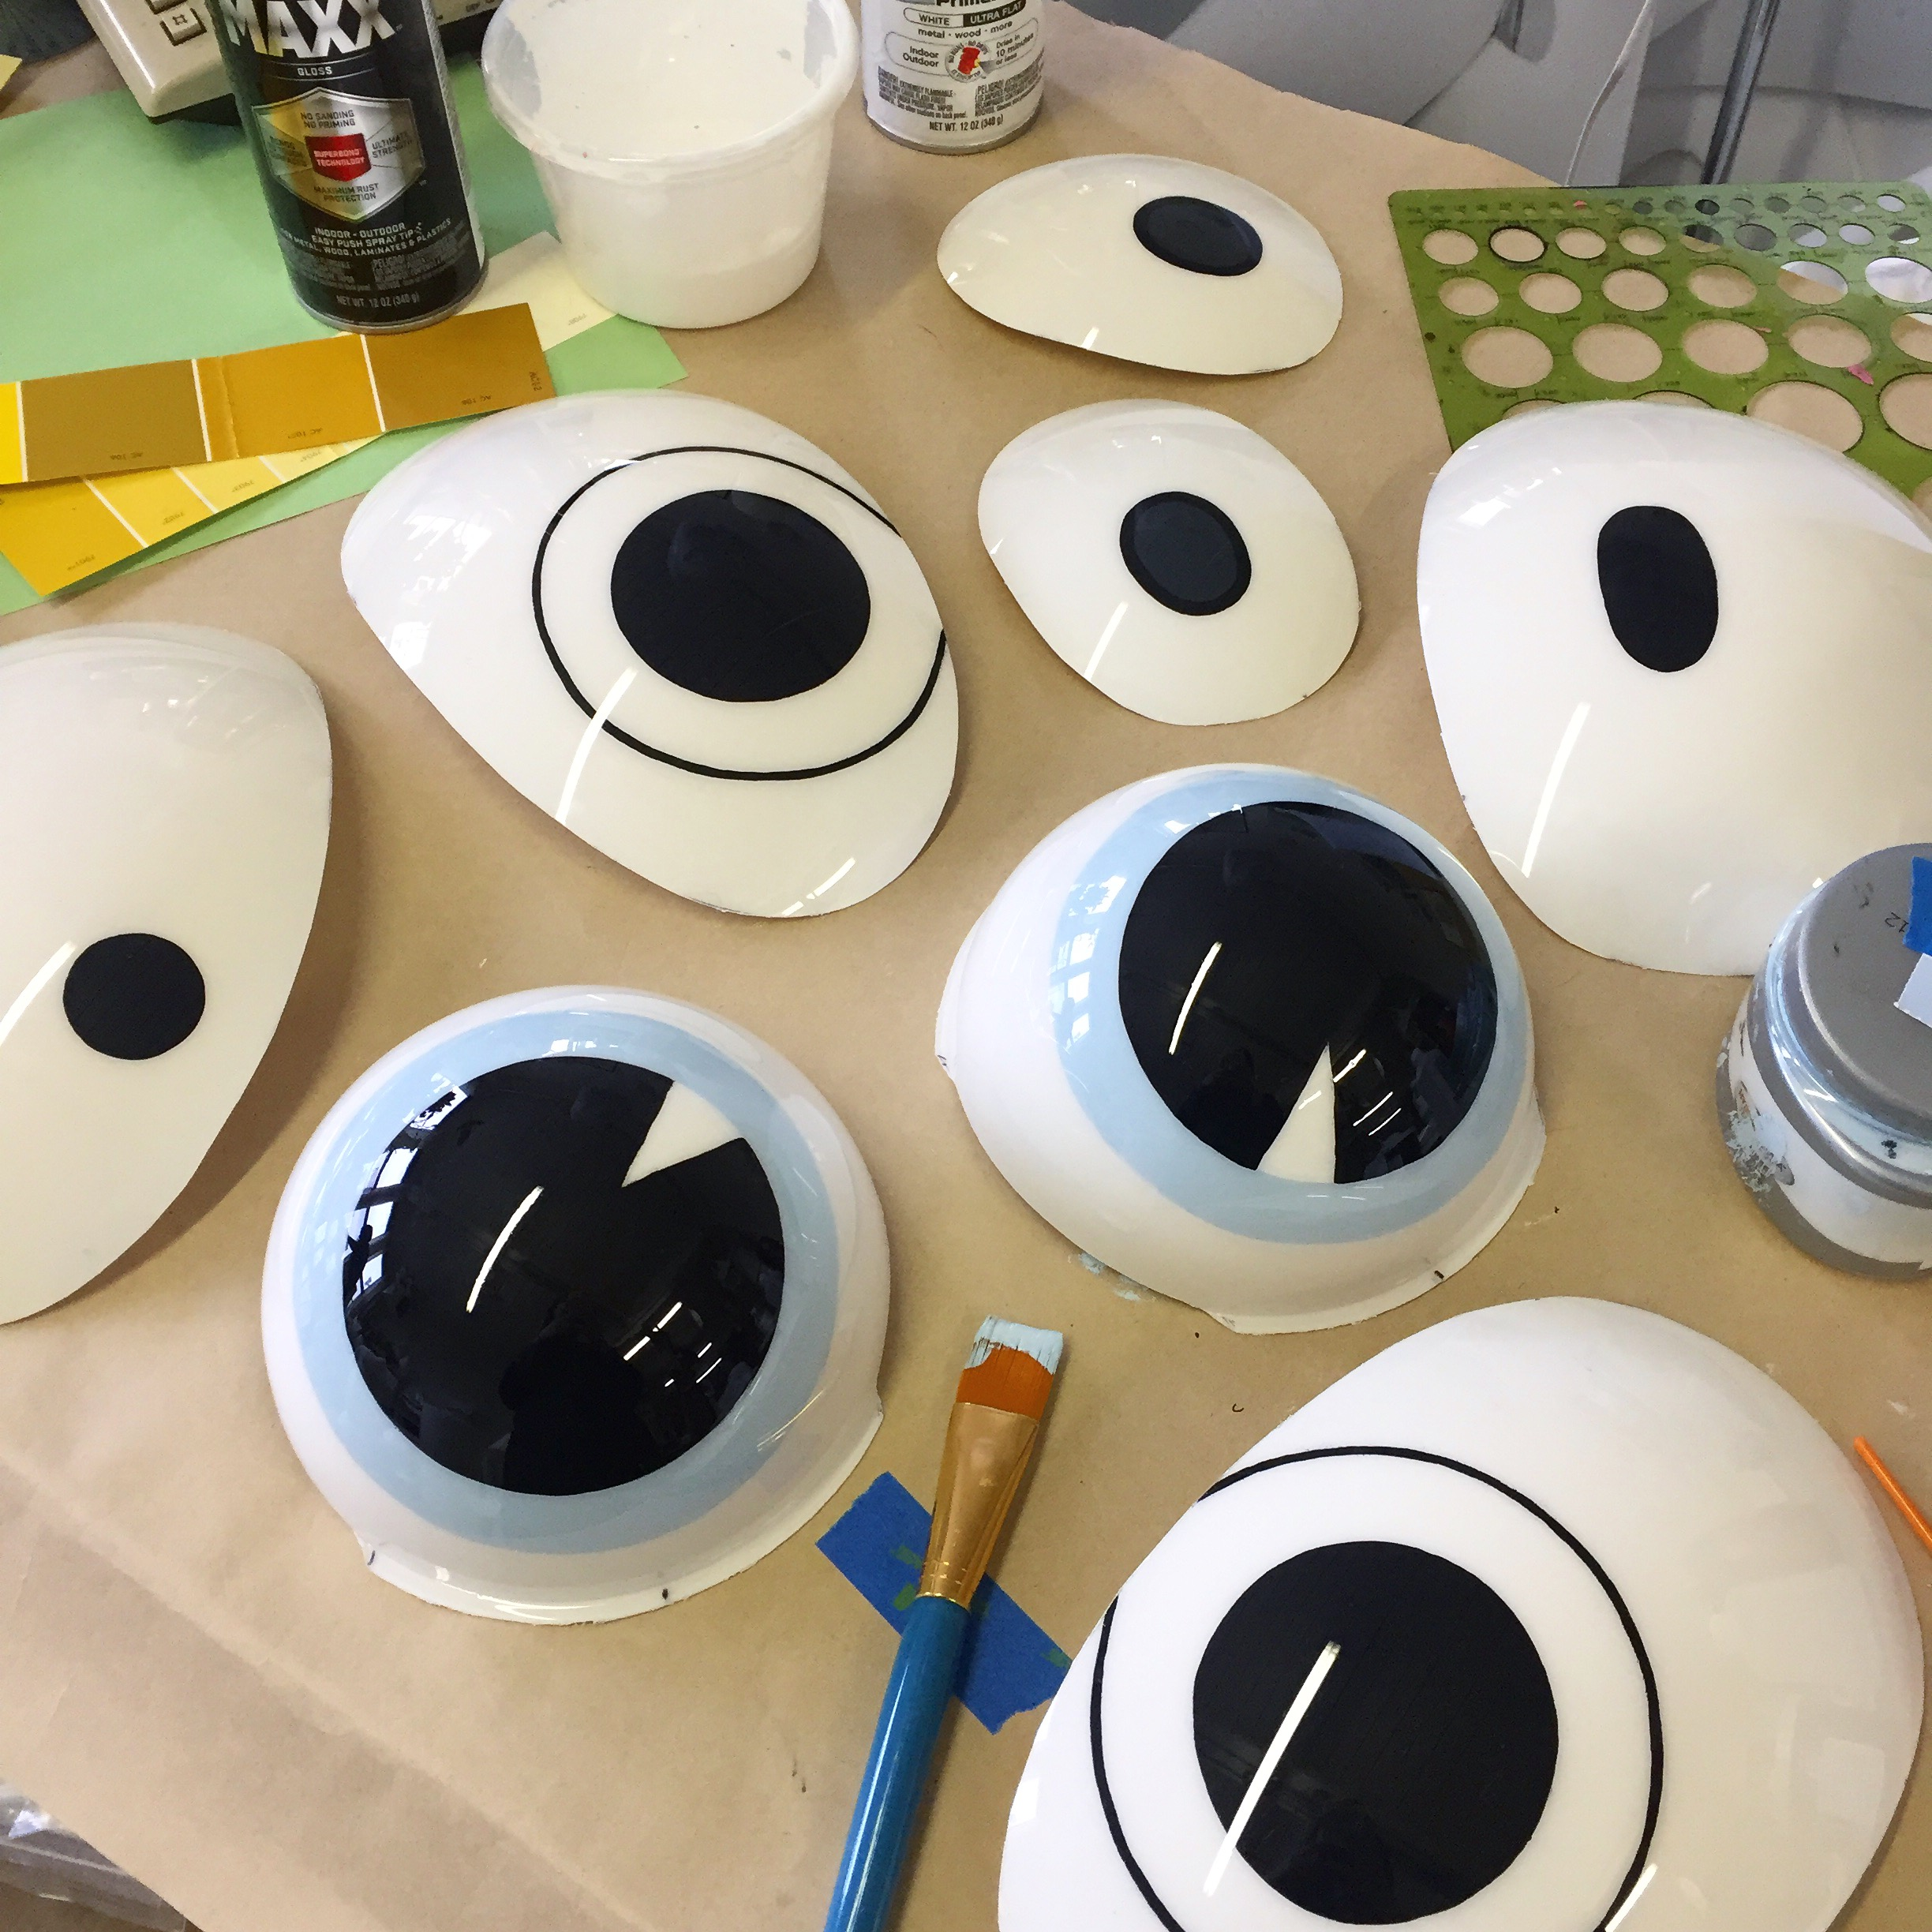 Reverse painting some eyes